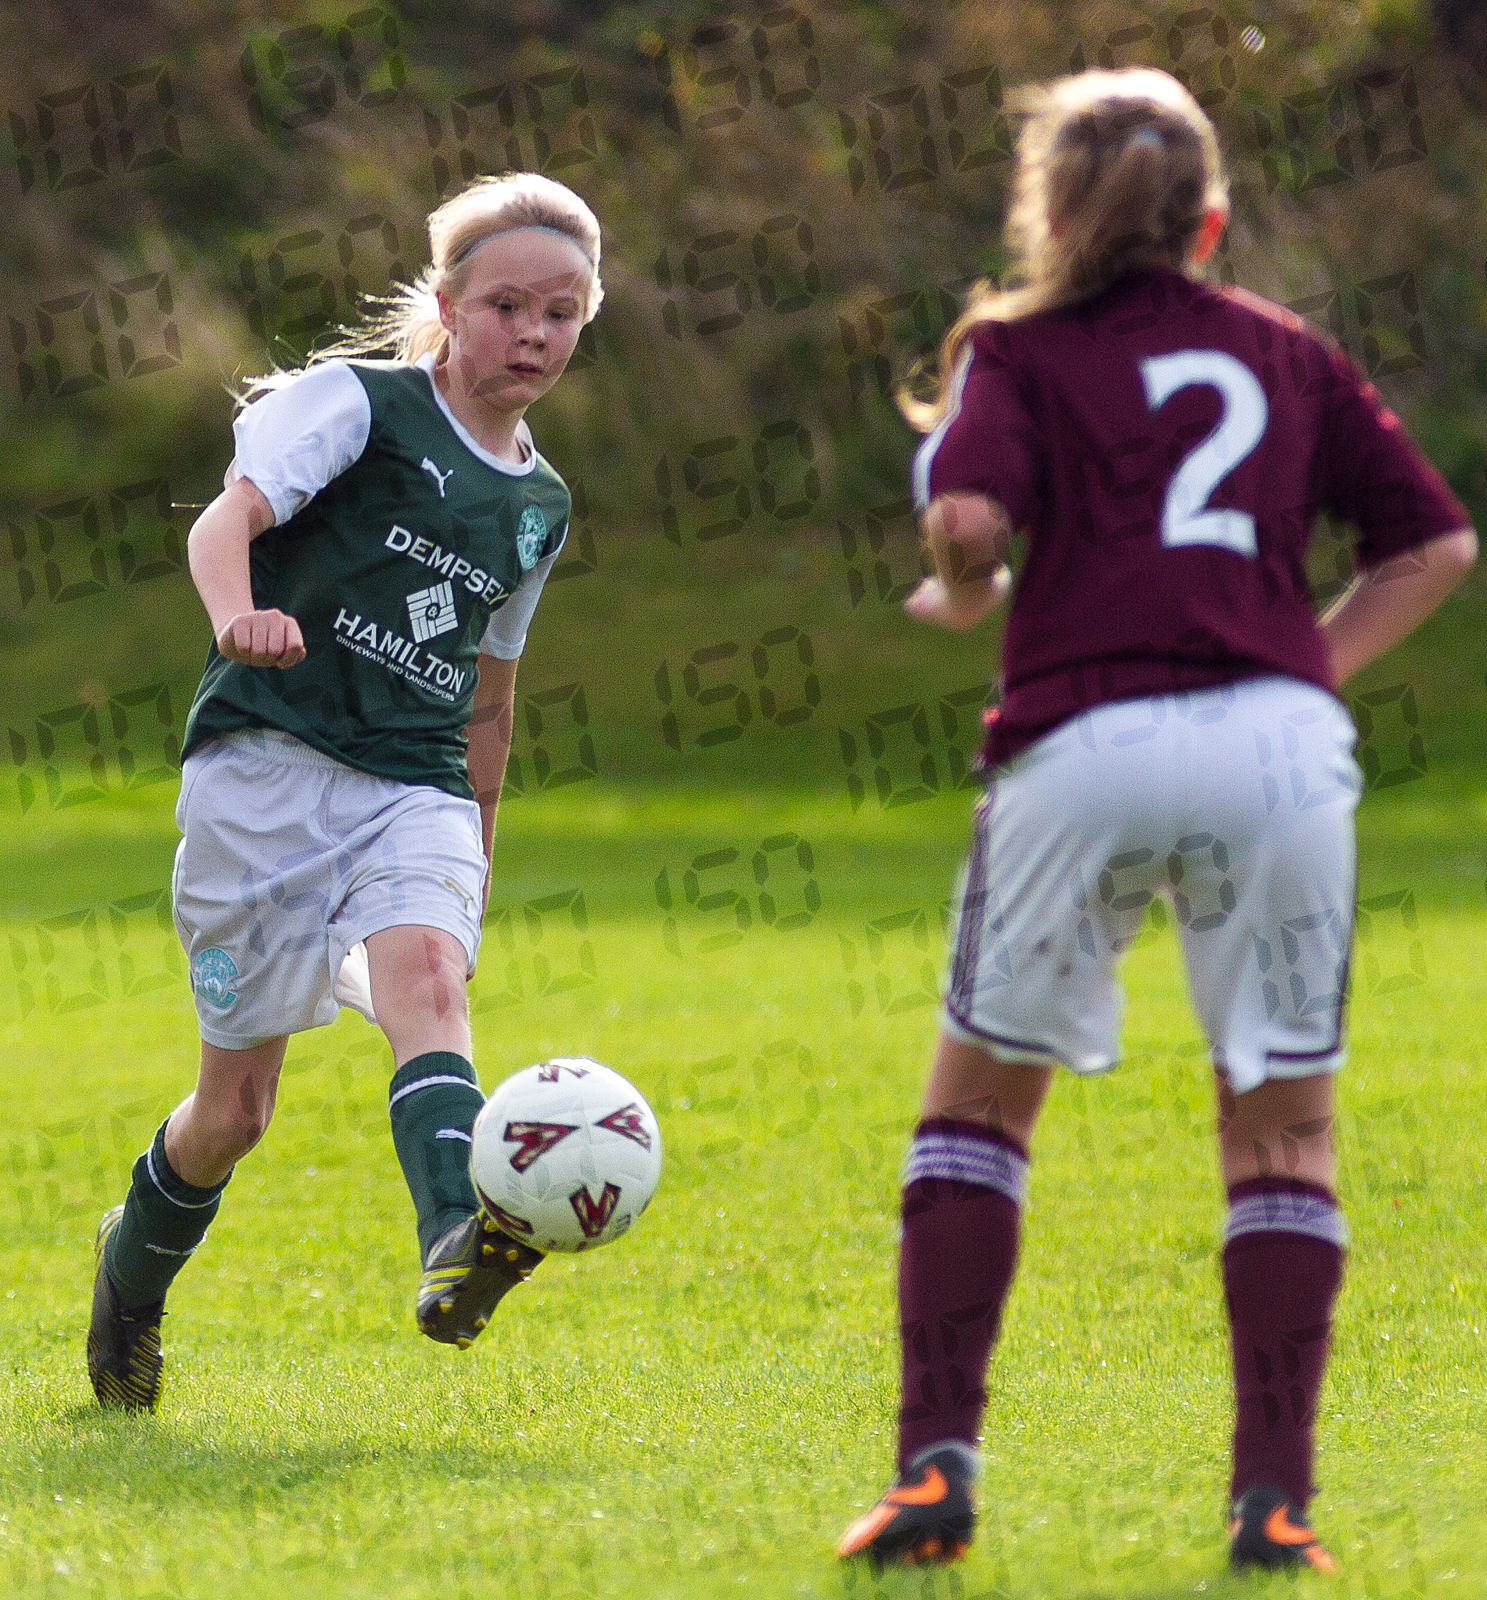 Hibs_v_Hearts_girls_13s-13.jpg